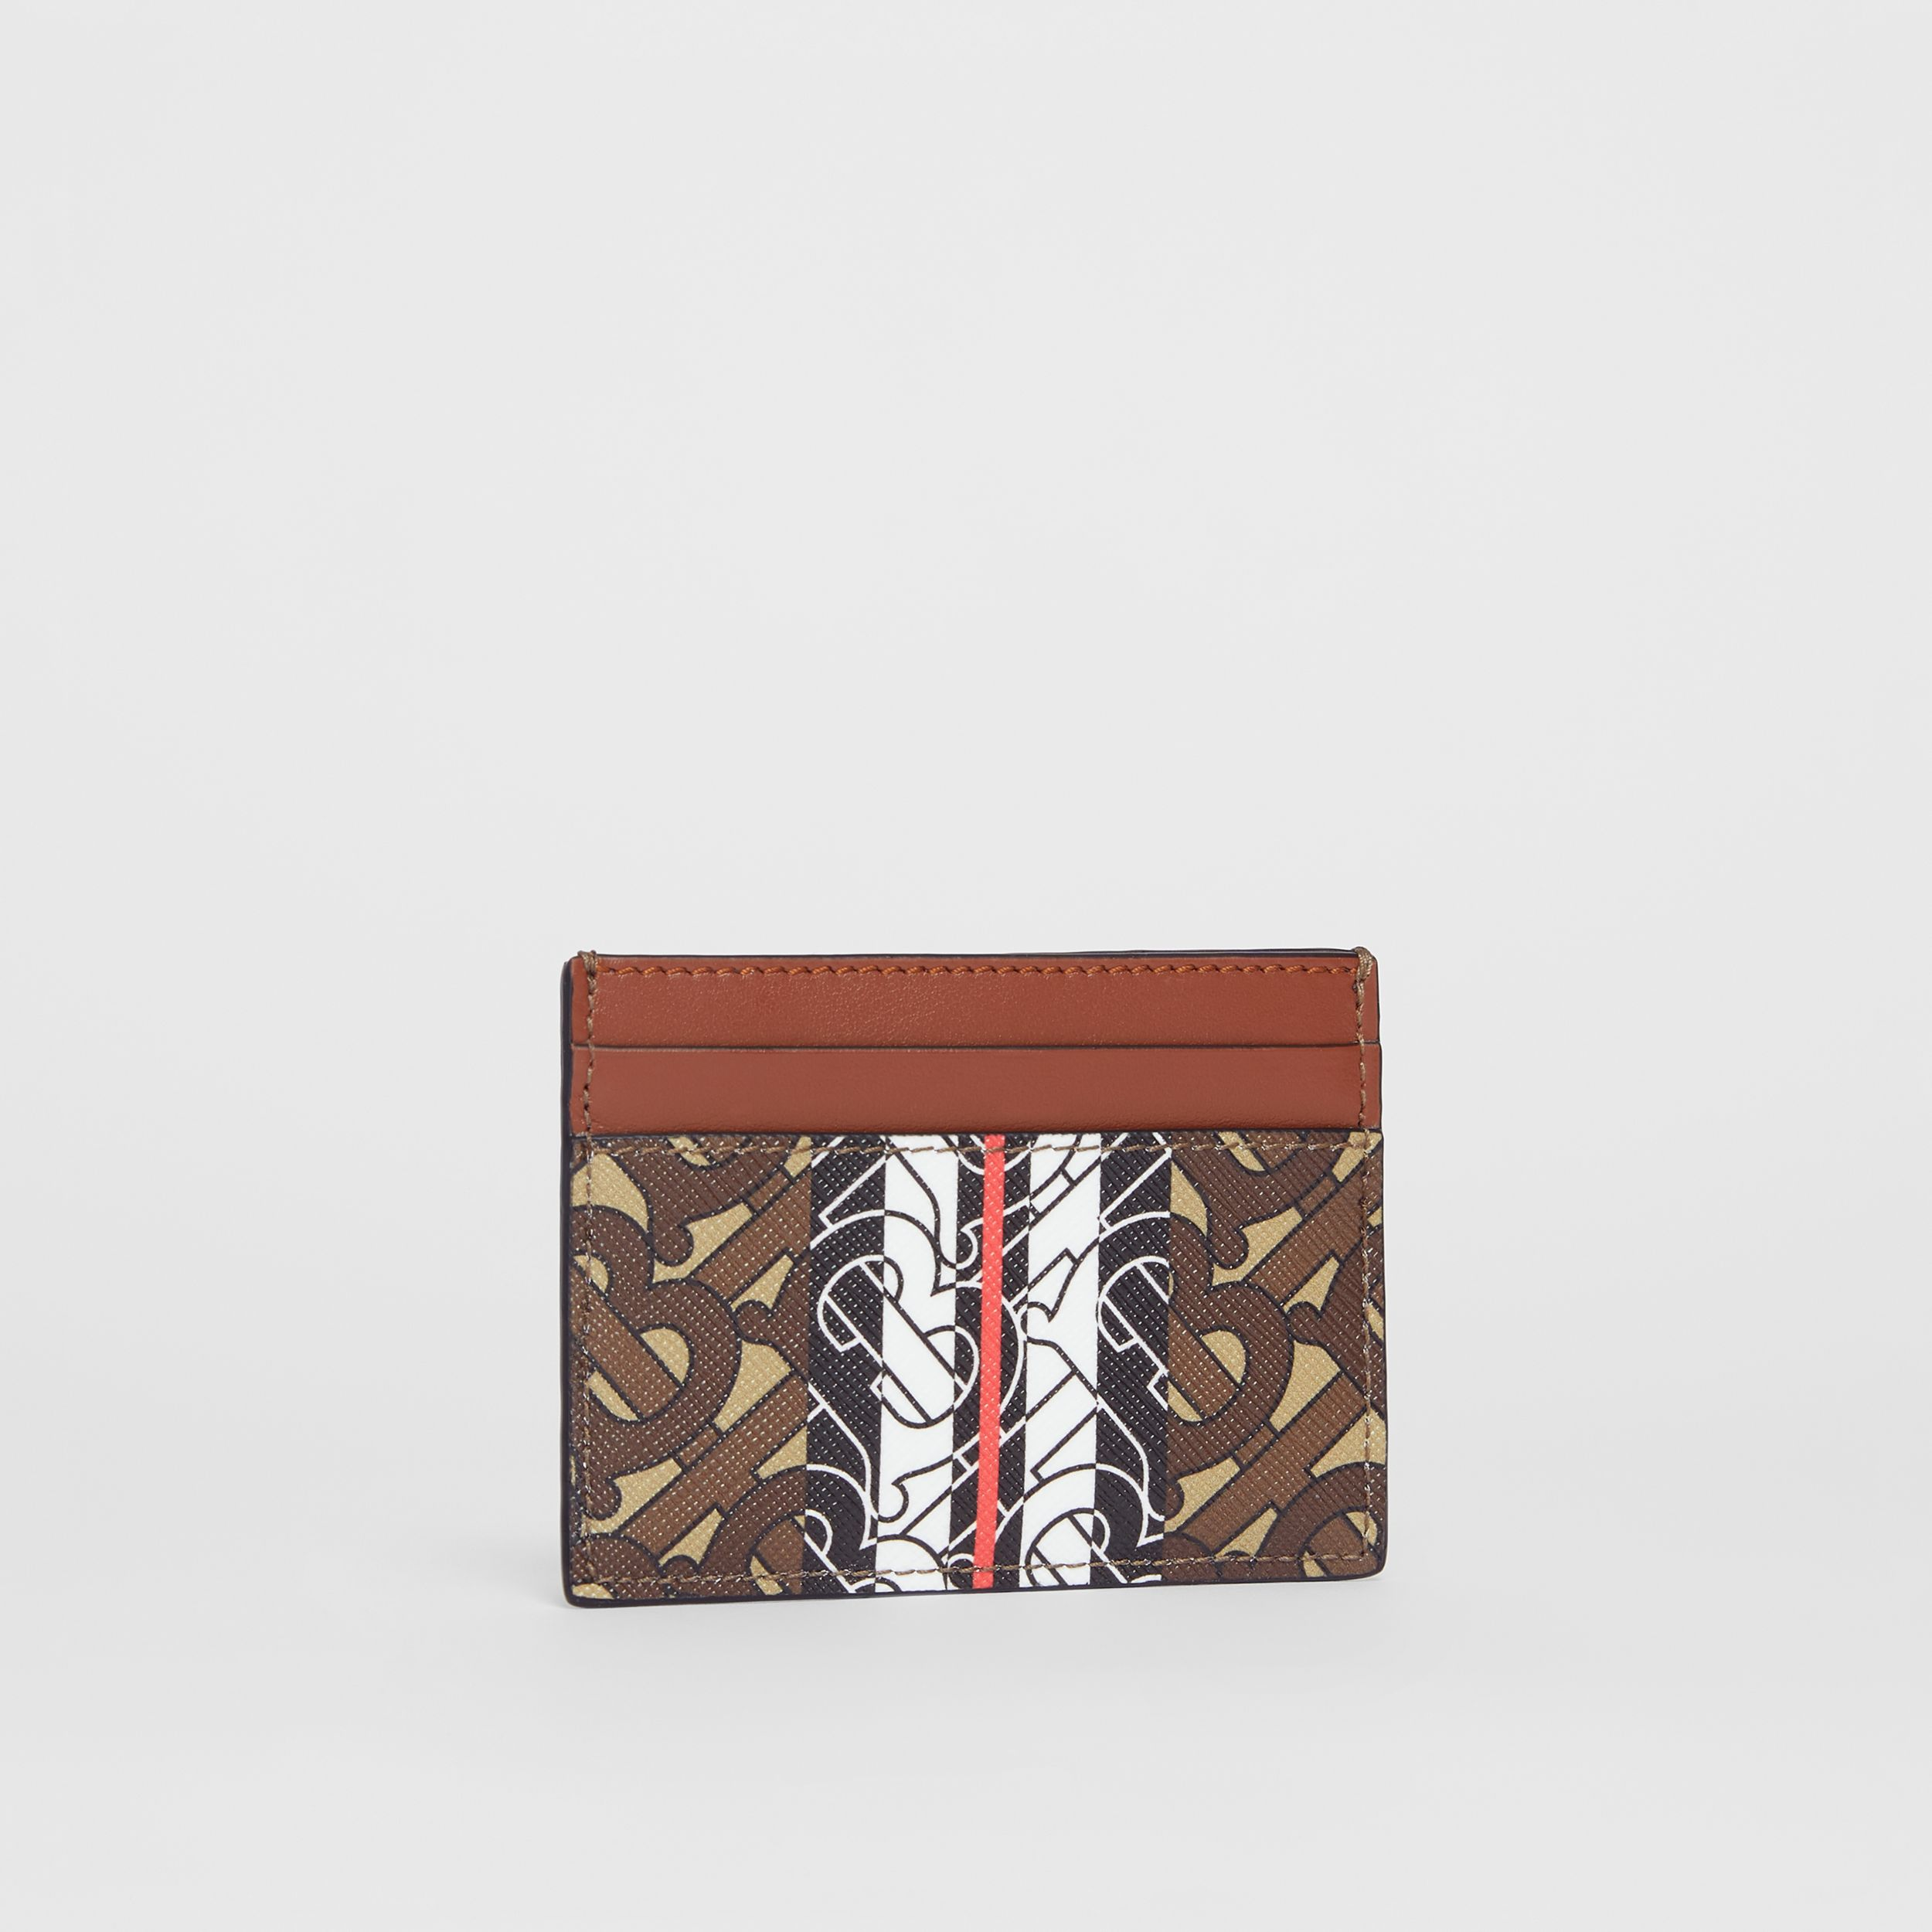 Monogram Stripe E-canvas Card Case in Bridle Brown | Burberry United Kingdom - 4